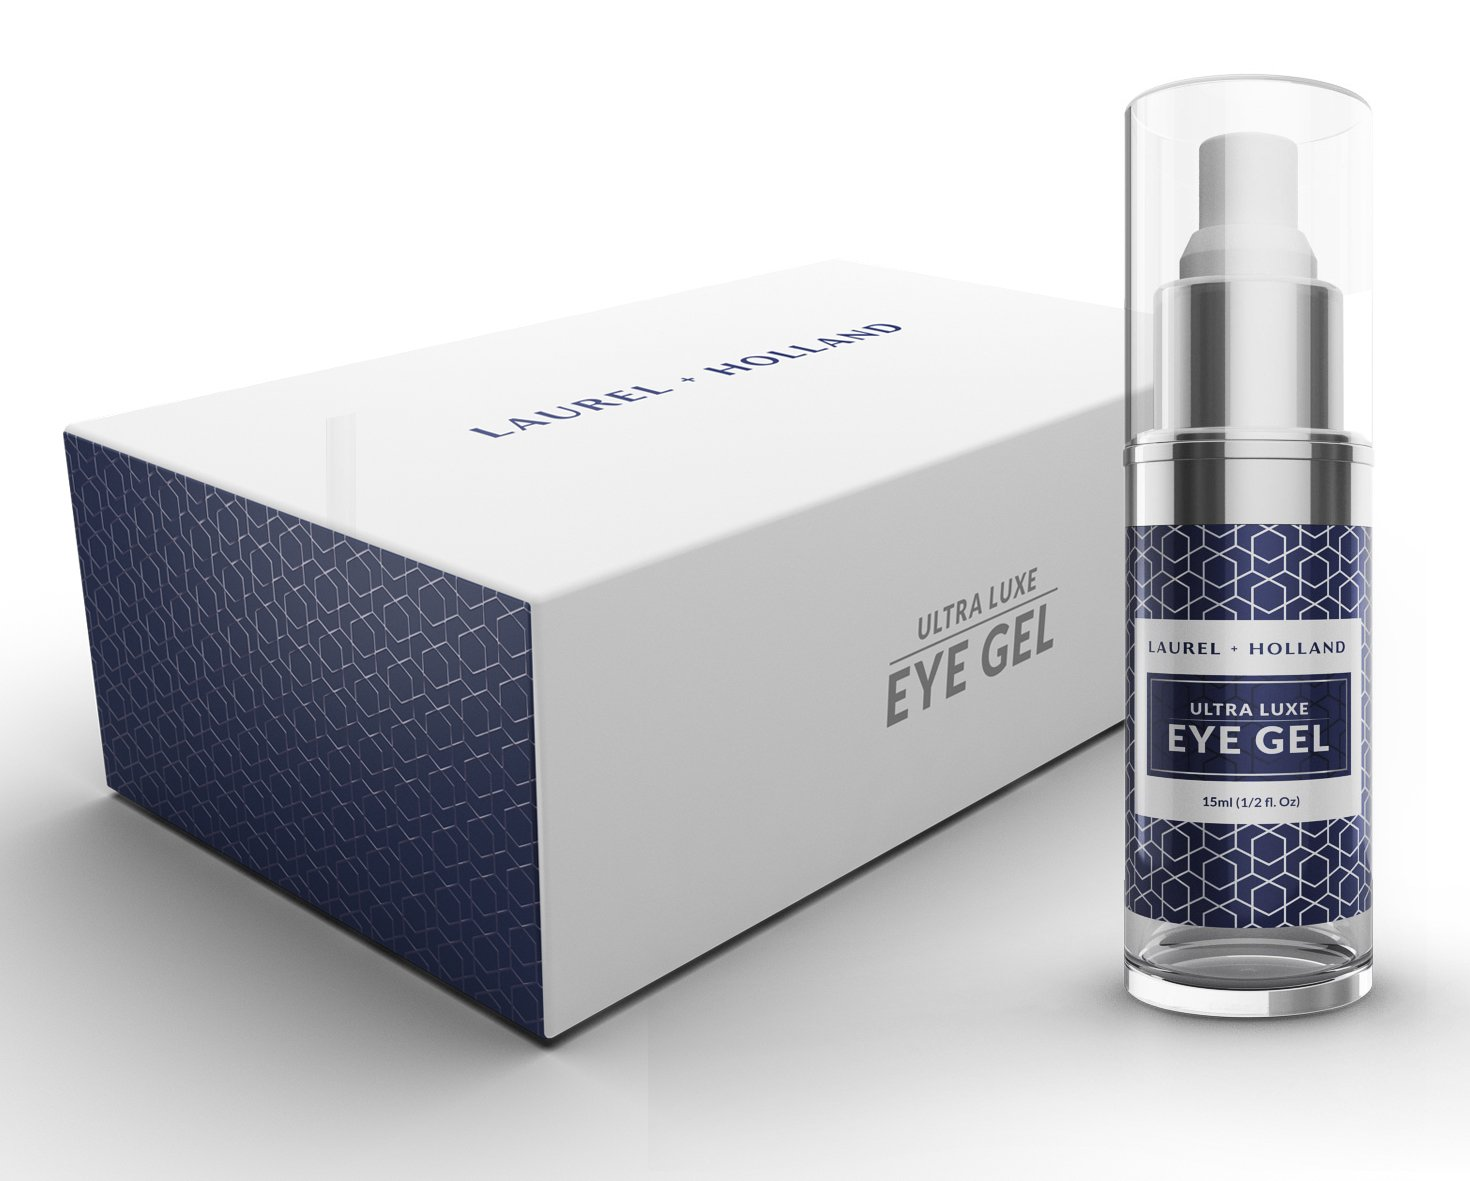 Ultra Luxe Eye Gel - Revitalizing Anti Aging Eye Cream Serum Complex for Wrinkles, Crow's Feet, Bags, Dark Circles and Puffy Eyes Diminish Within Just 90 Seconds Instant Firming with Matrixyl